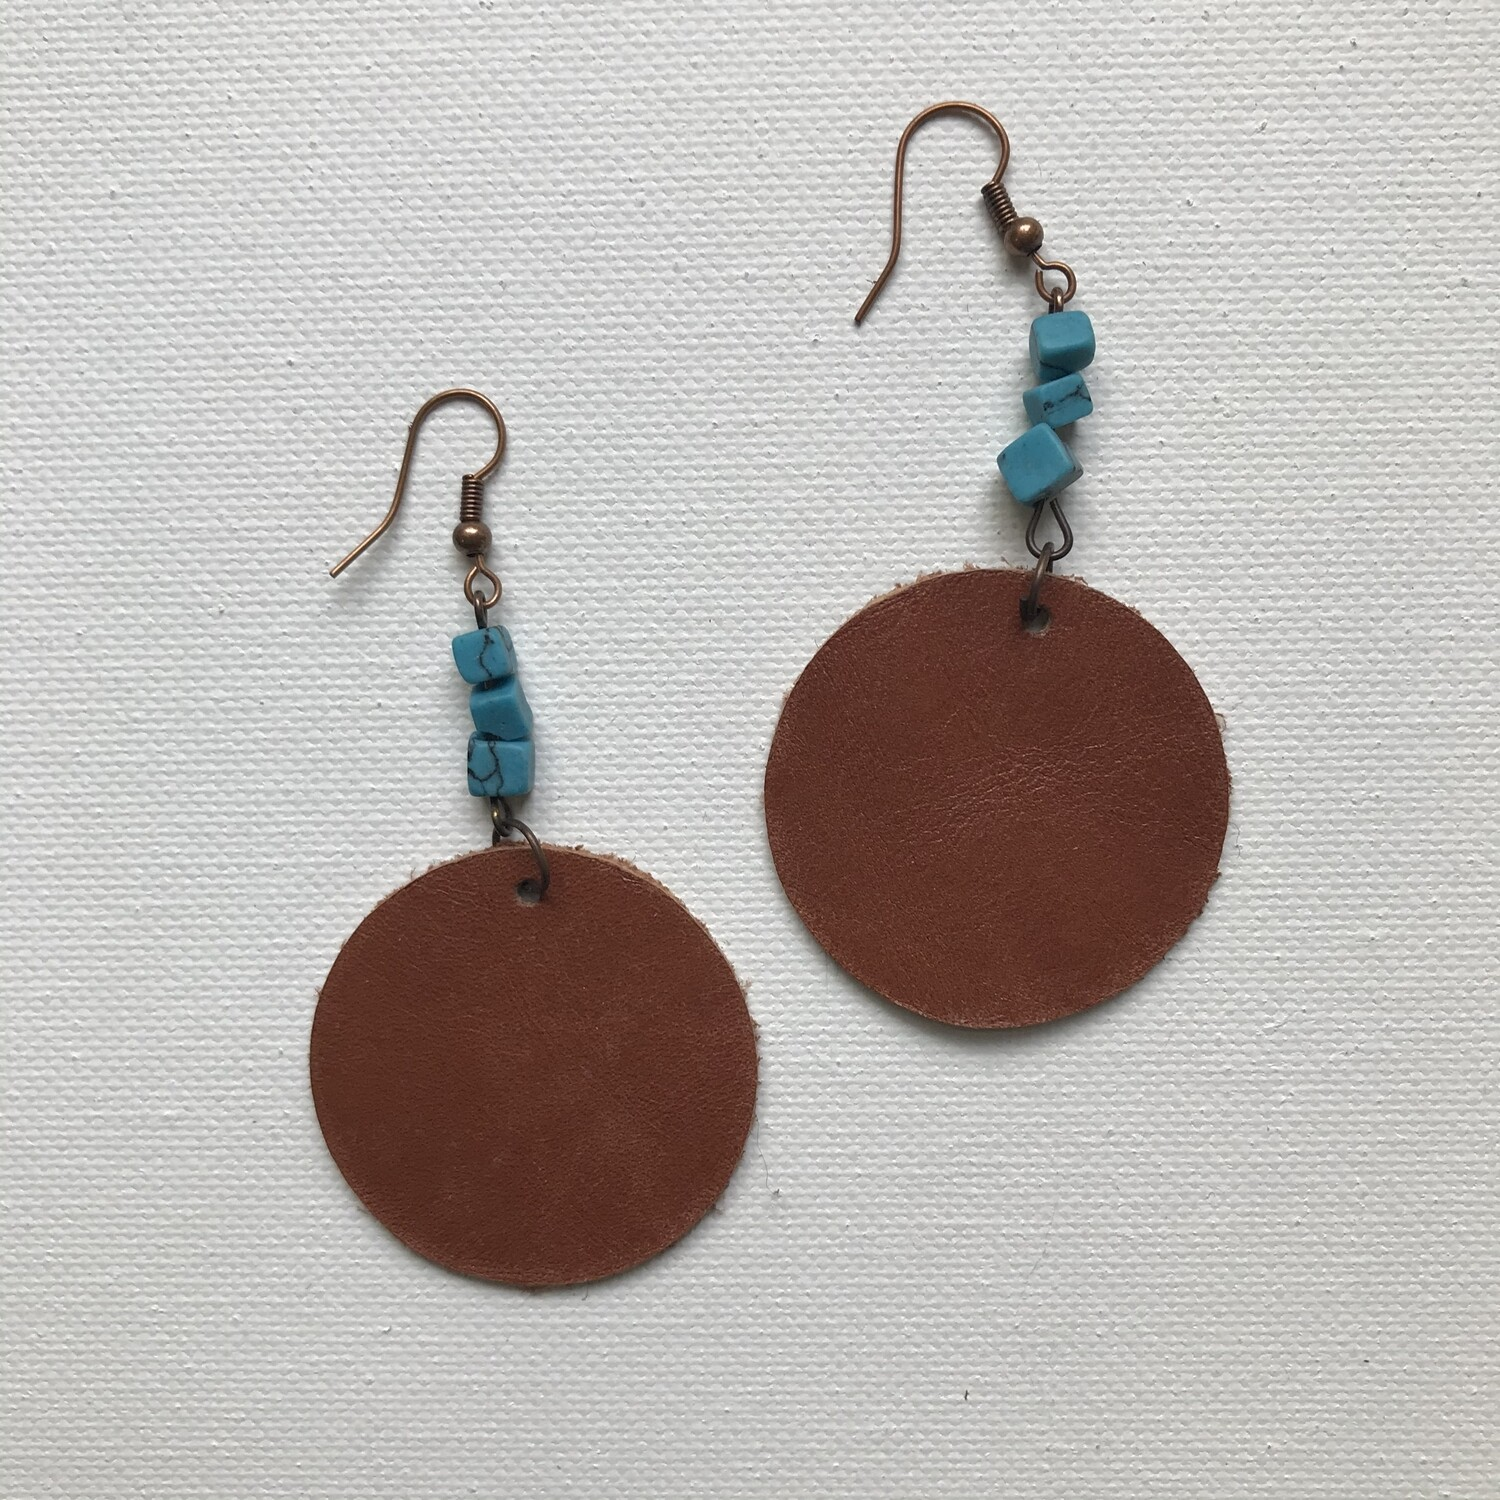 Leather + Bead Earring